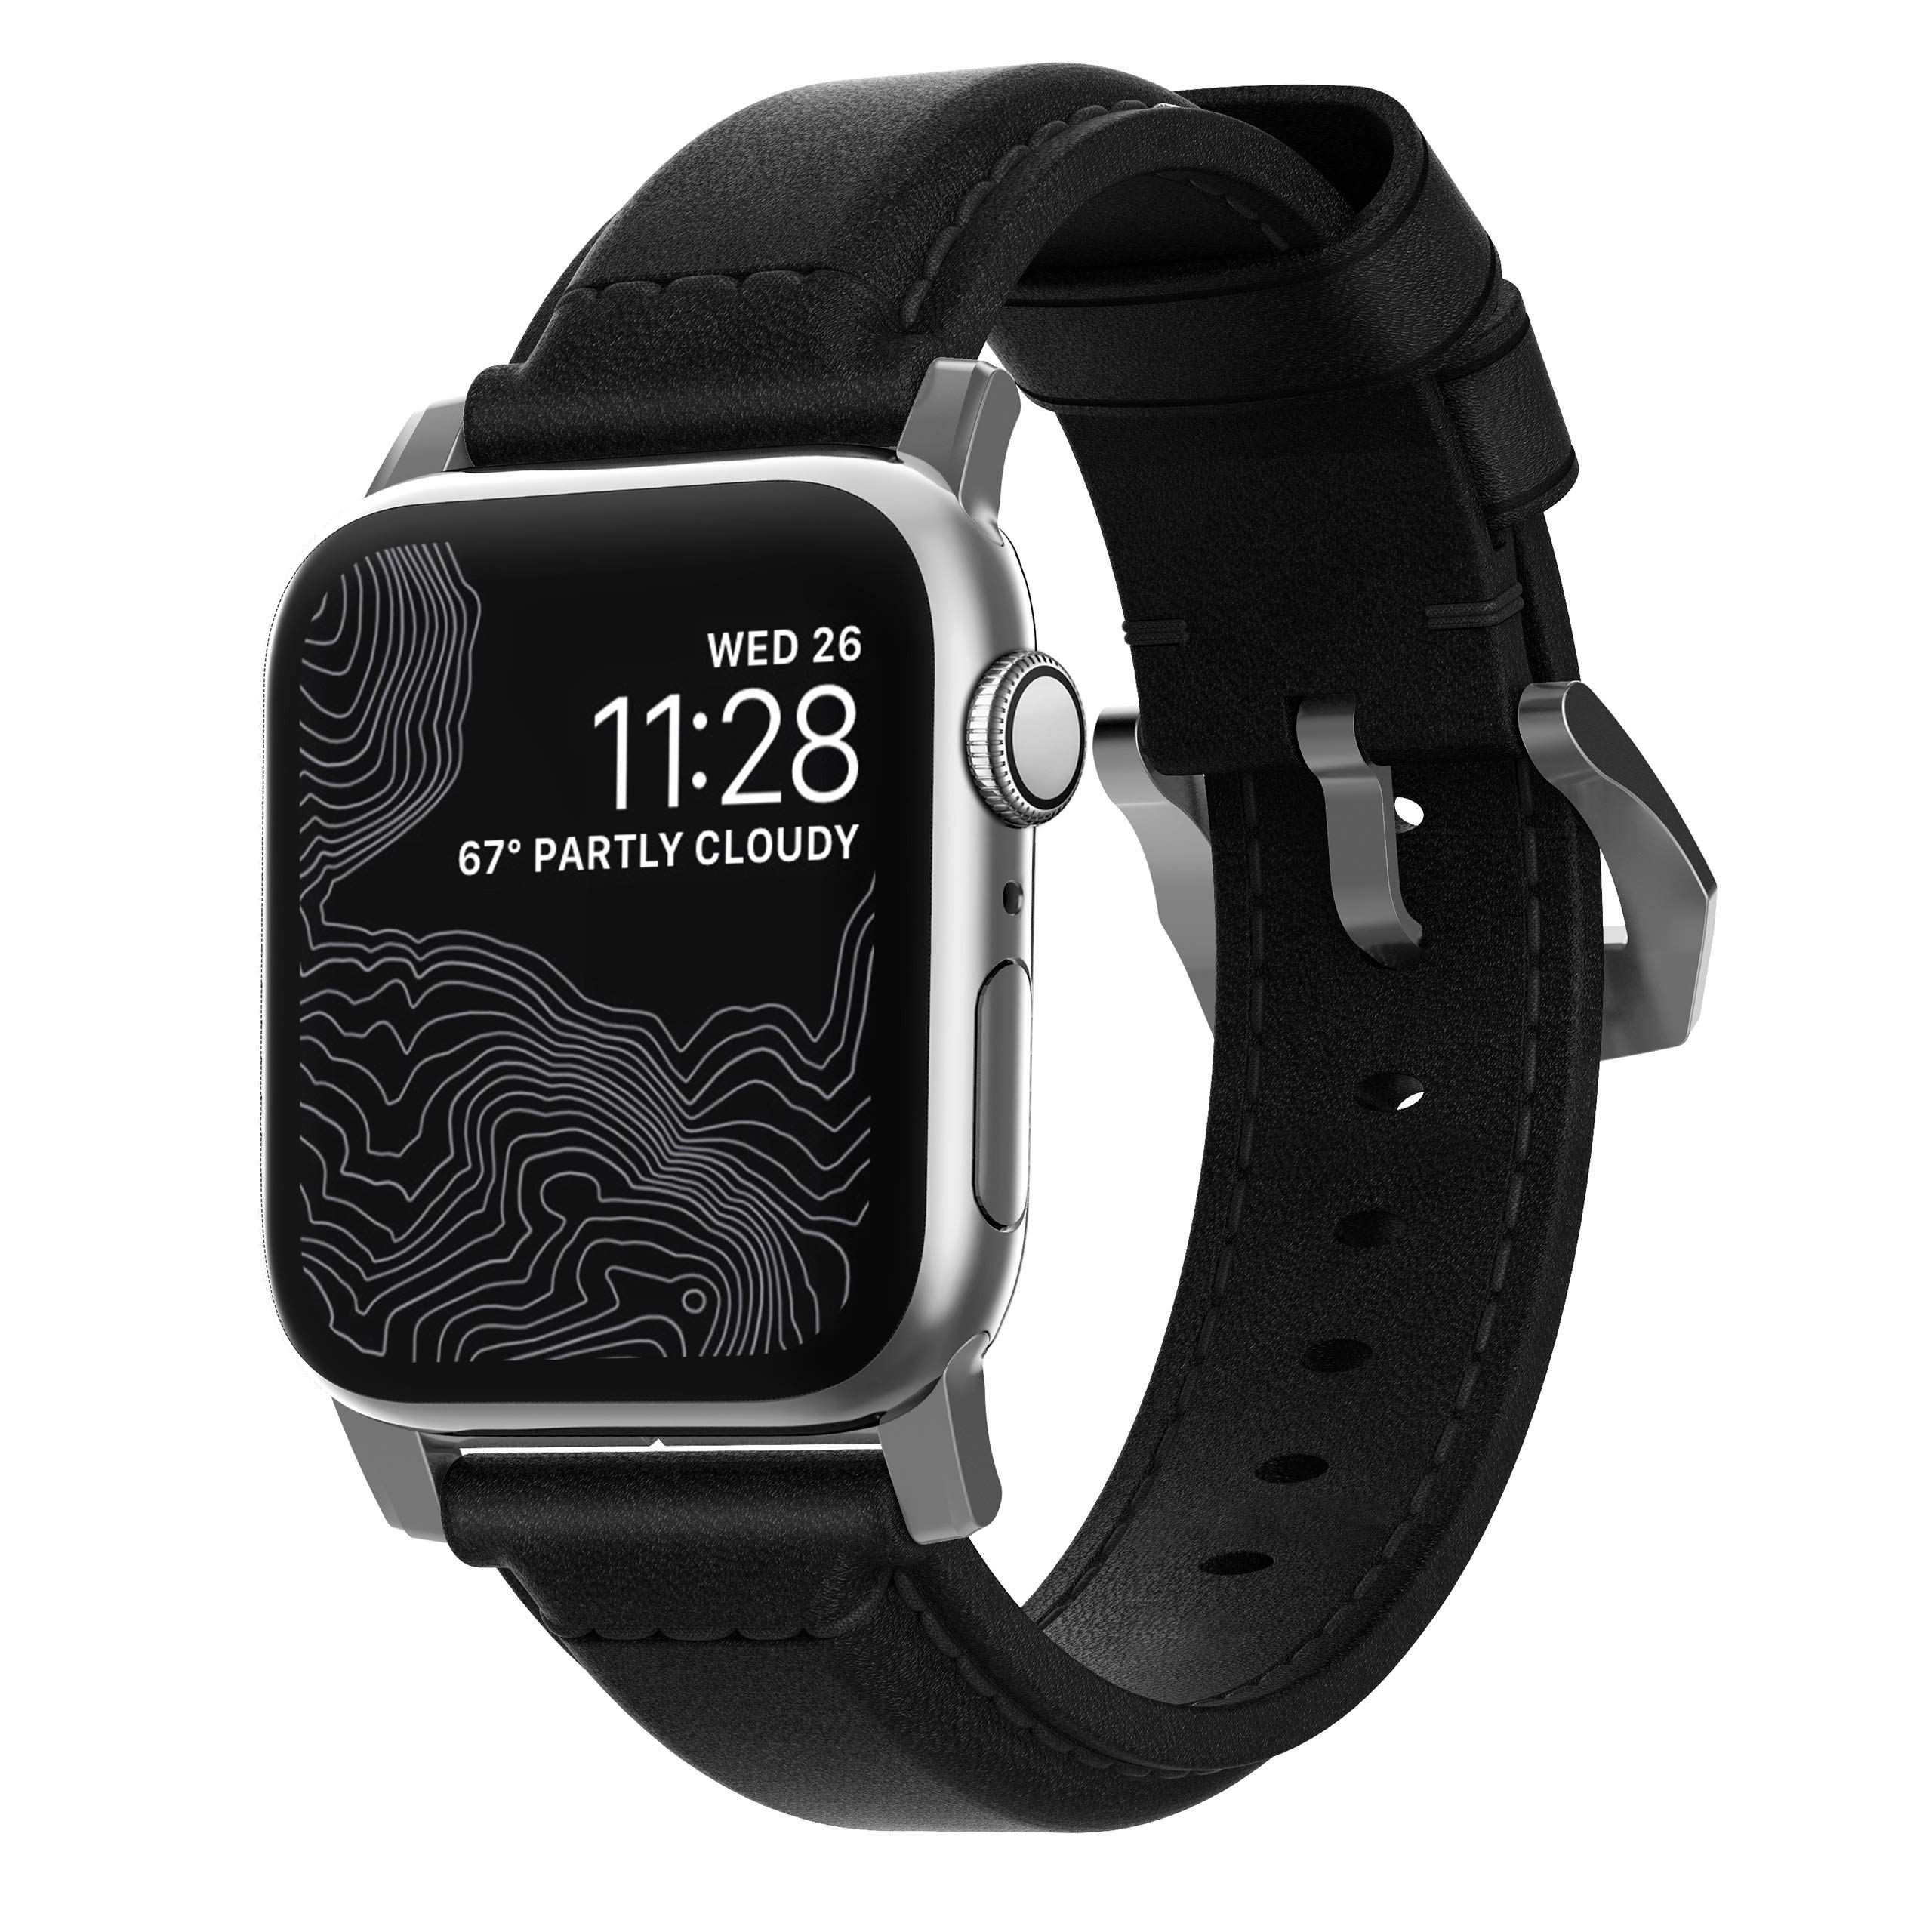 Nomad Traditional Strap for Apple Watch 44mm/42mm | Black Horween Leather | Silver Hardware